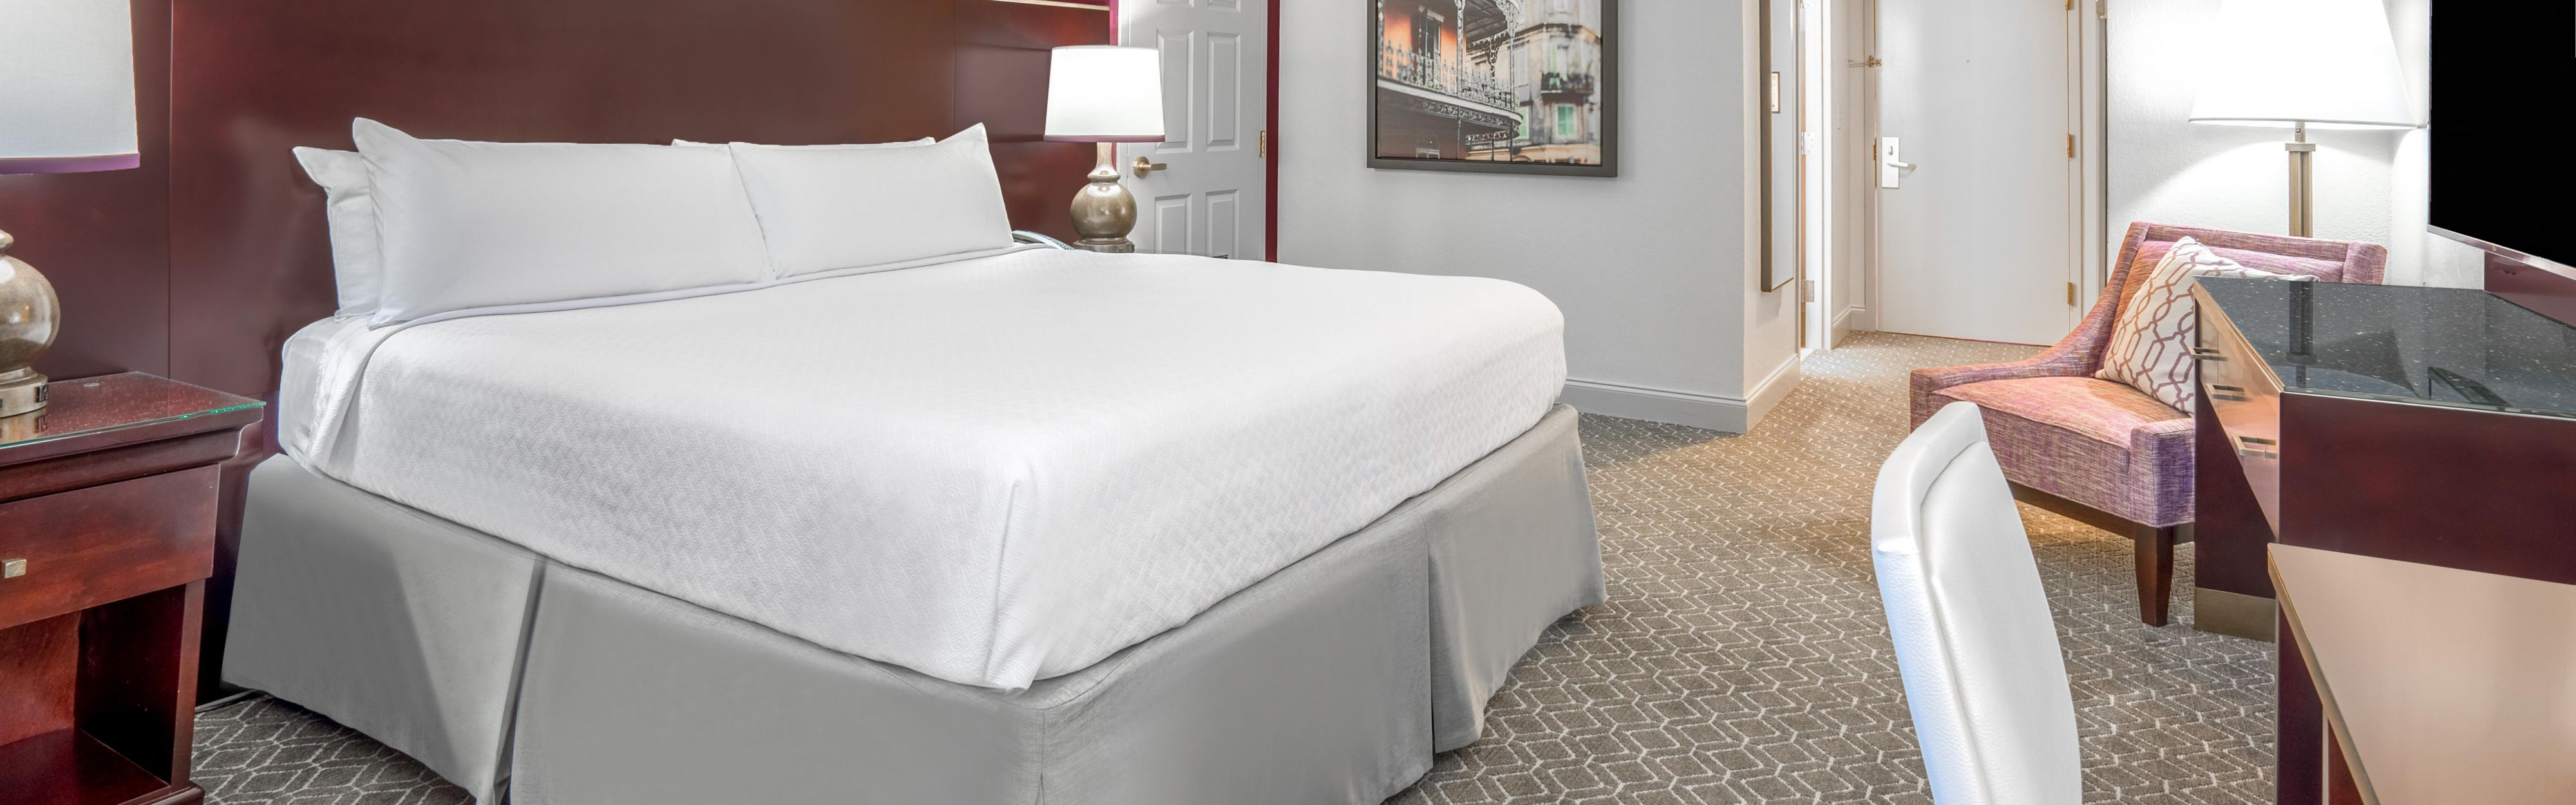 Crowne Plaza New Orleans French Quarter image 1